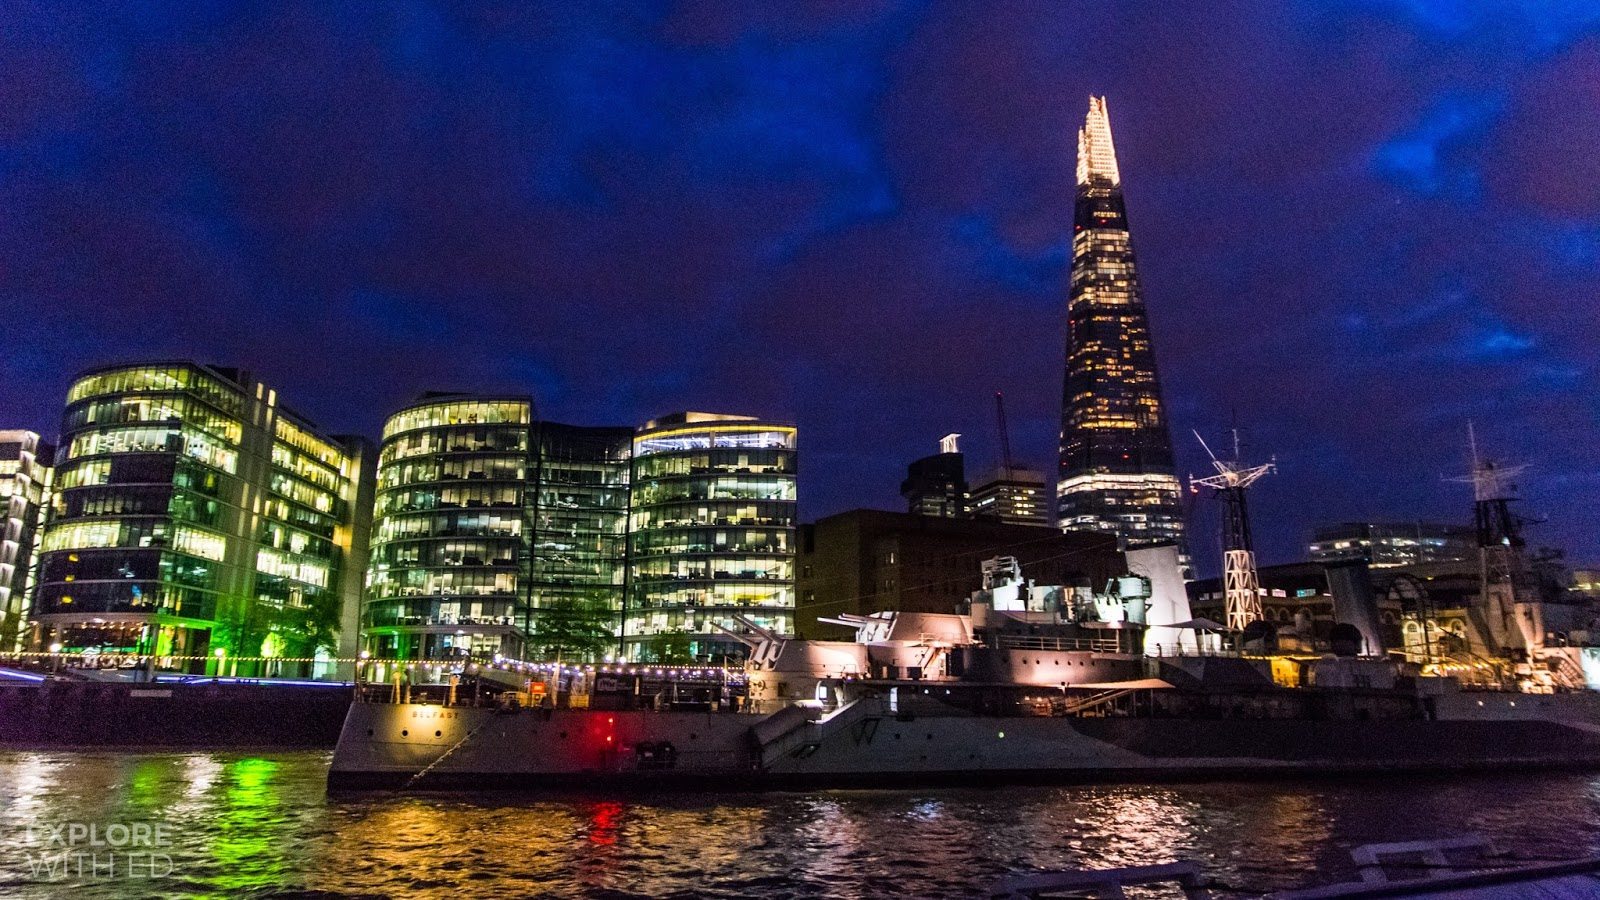 London city at night viewed from Thames City Cruise